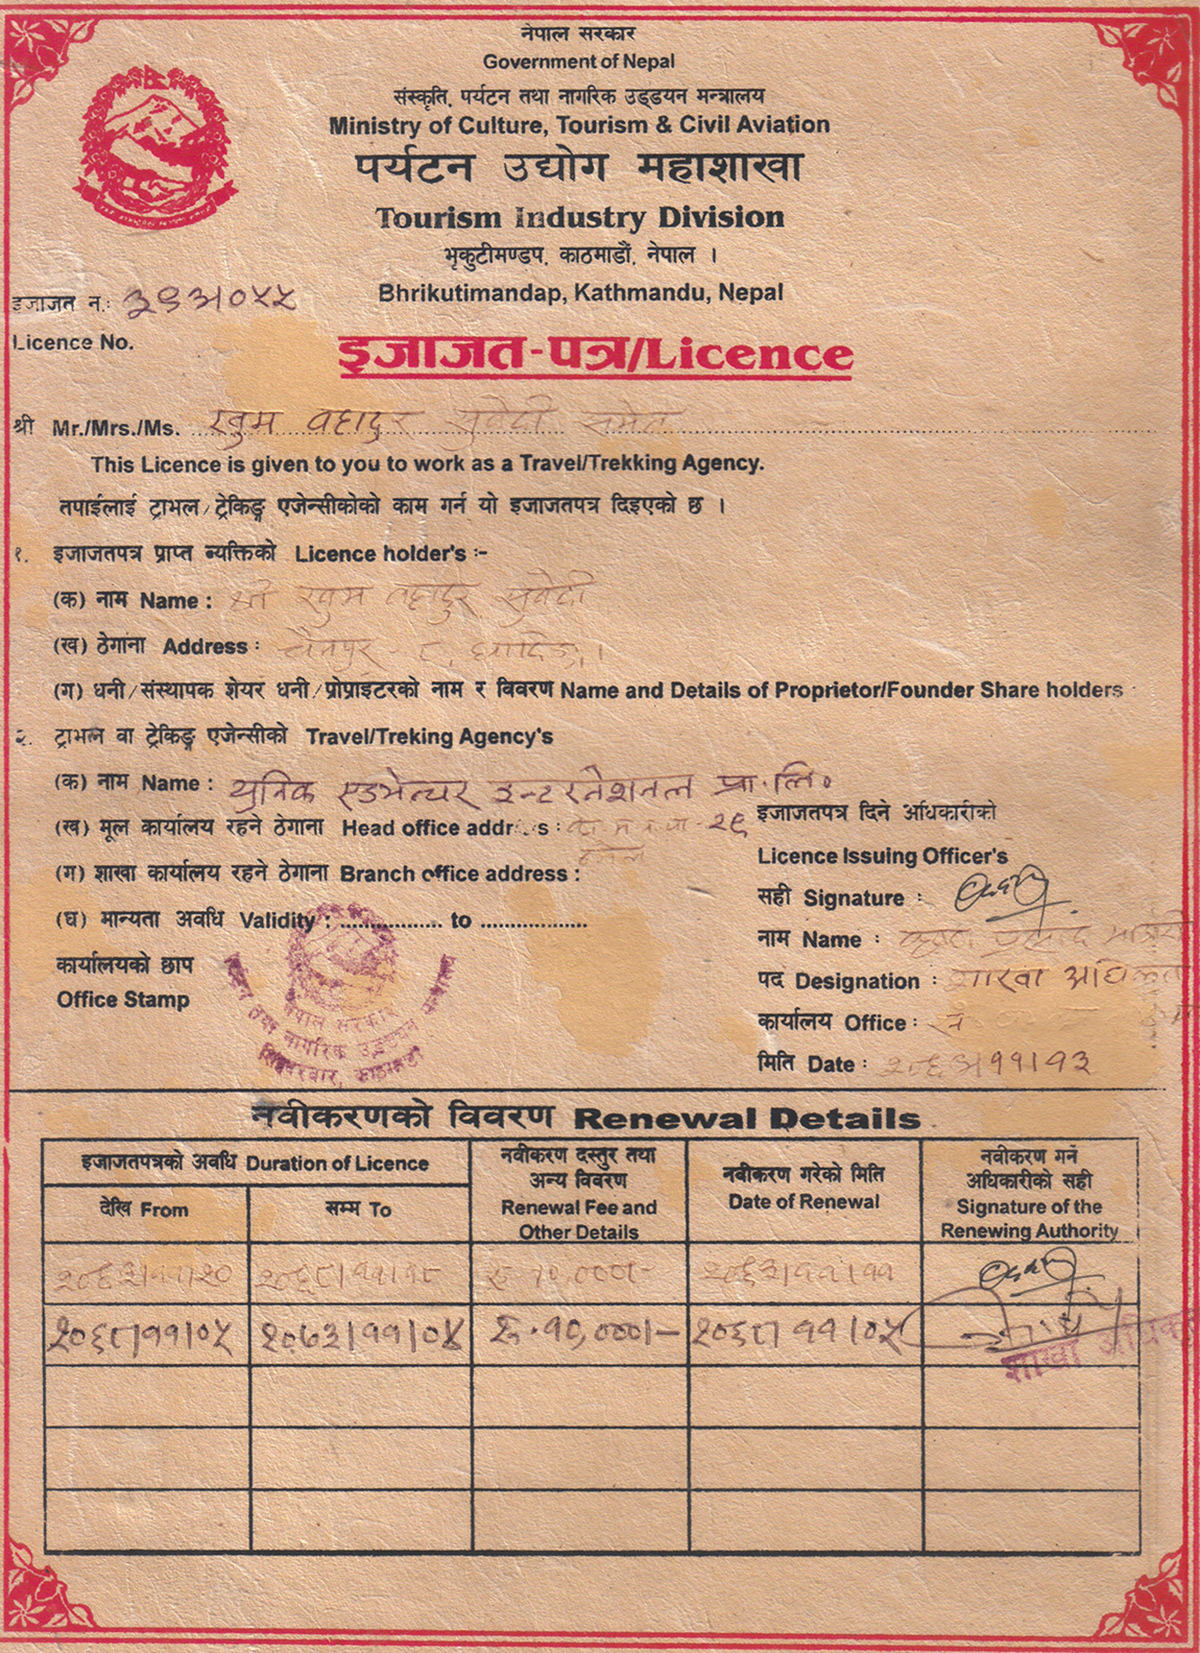 Certificate of Tourism Industry Division, Ministry of Tourism, Government of Nepal